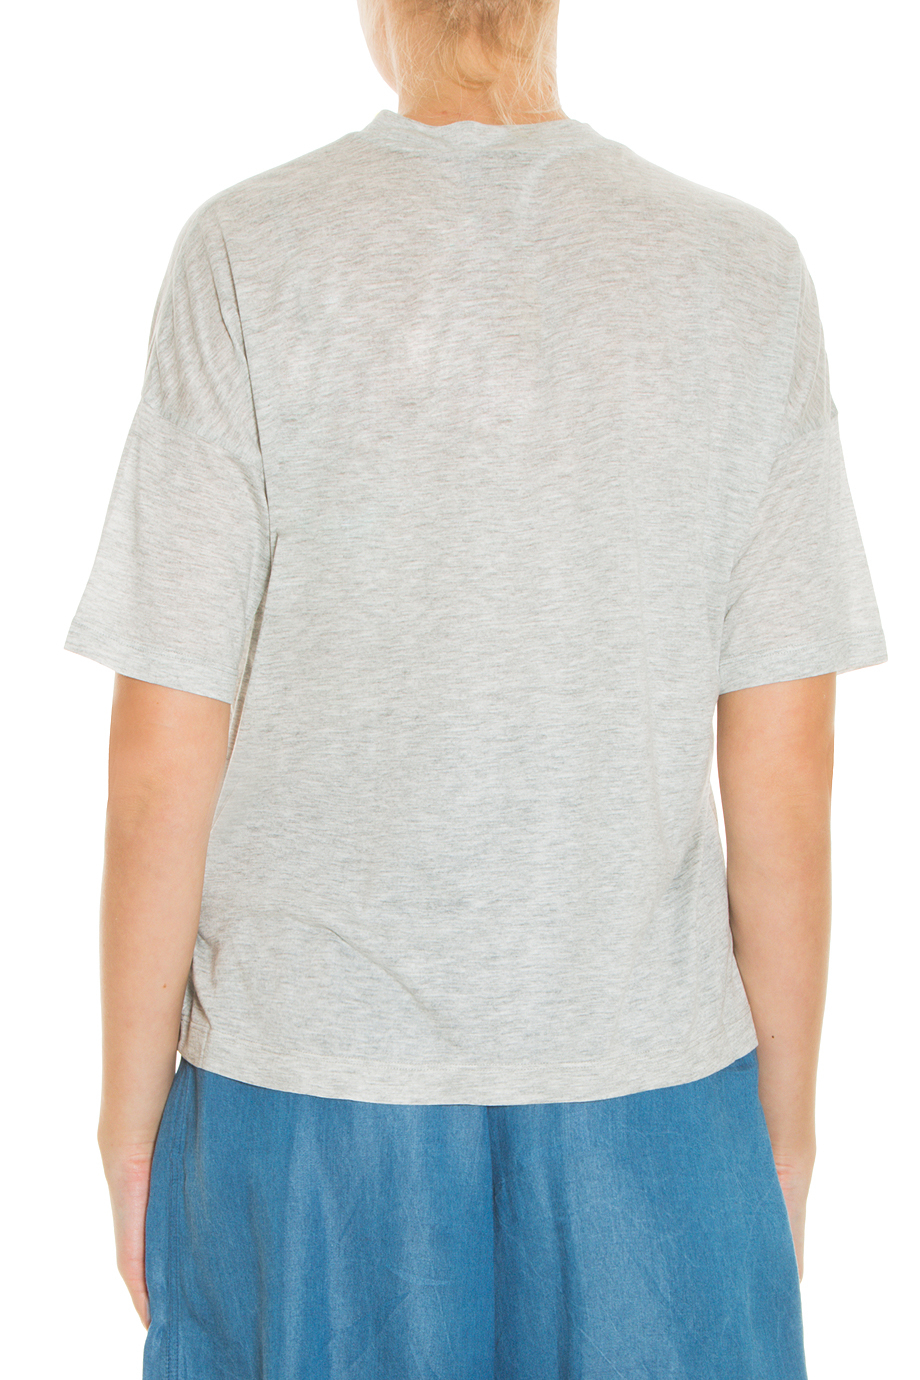 T by alexander wang jersey t shirt in gray lyst for T by alexander wang t shirt